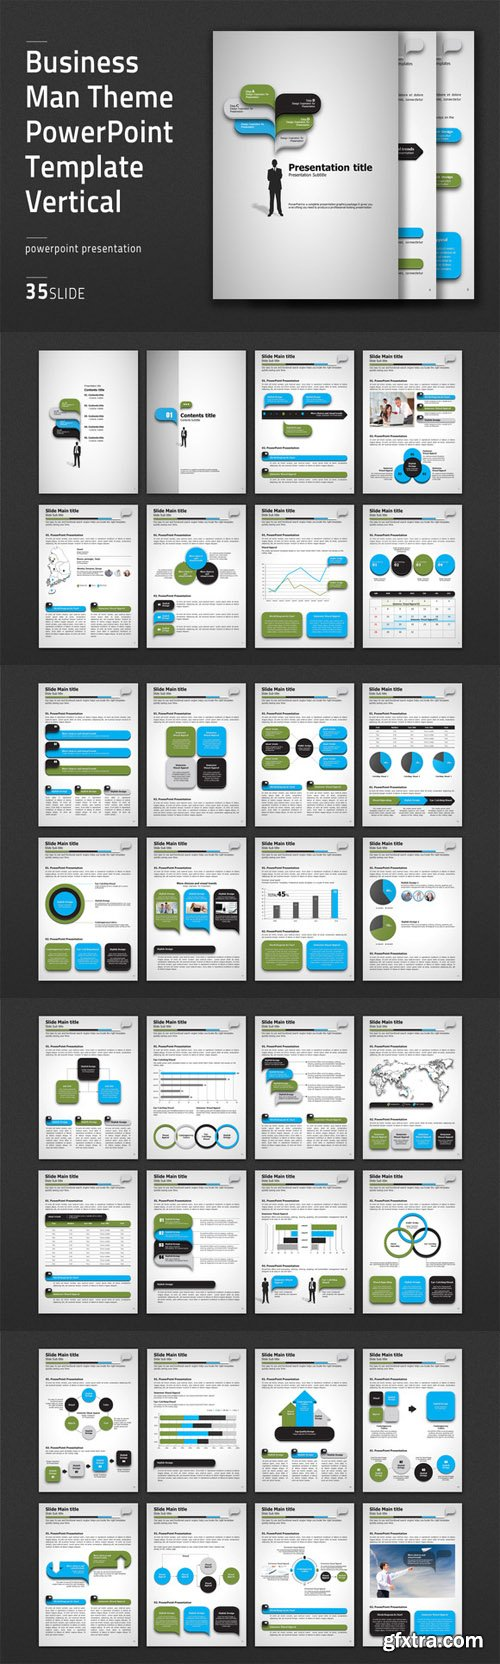 CM - Business Man Theme PPT Vertical 474569